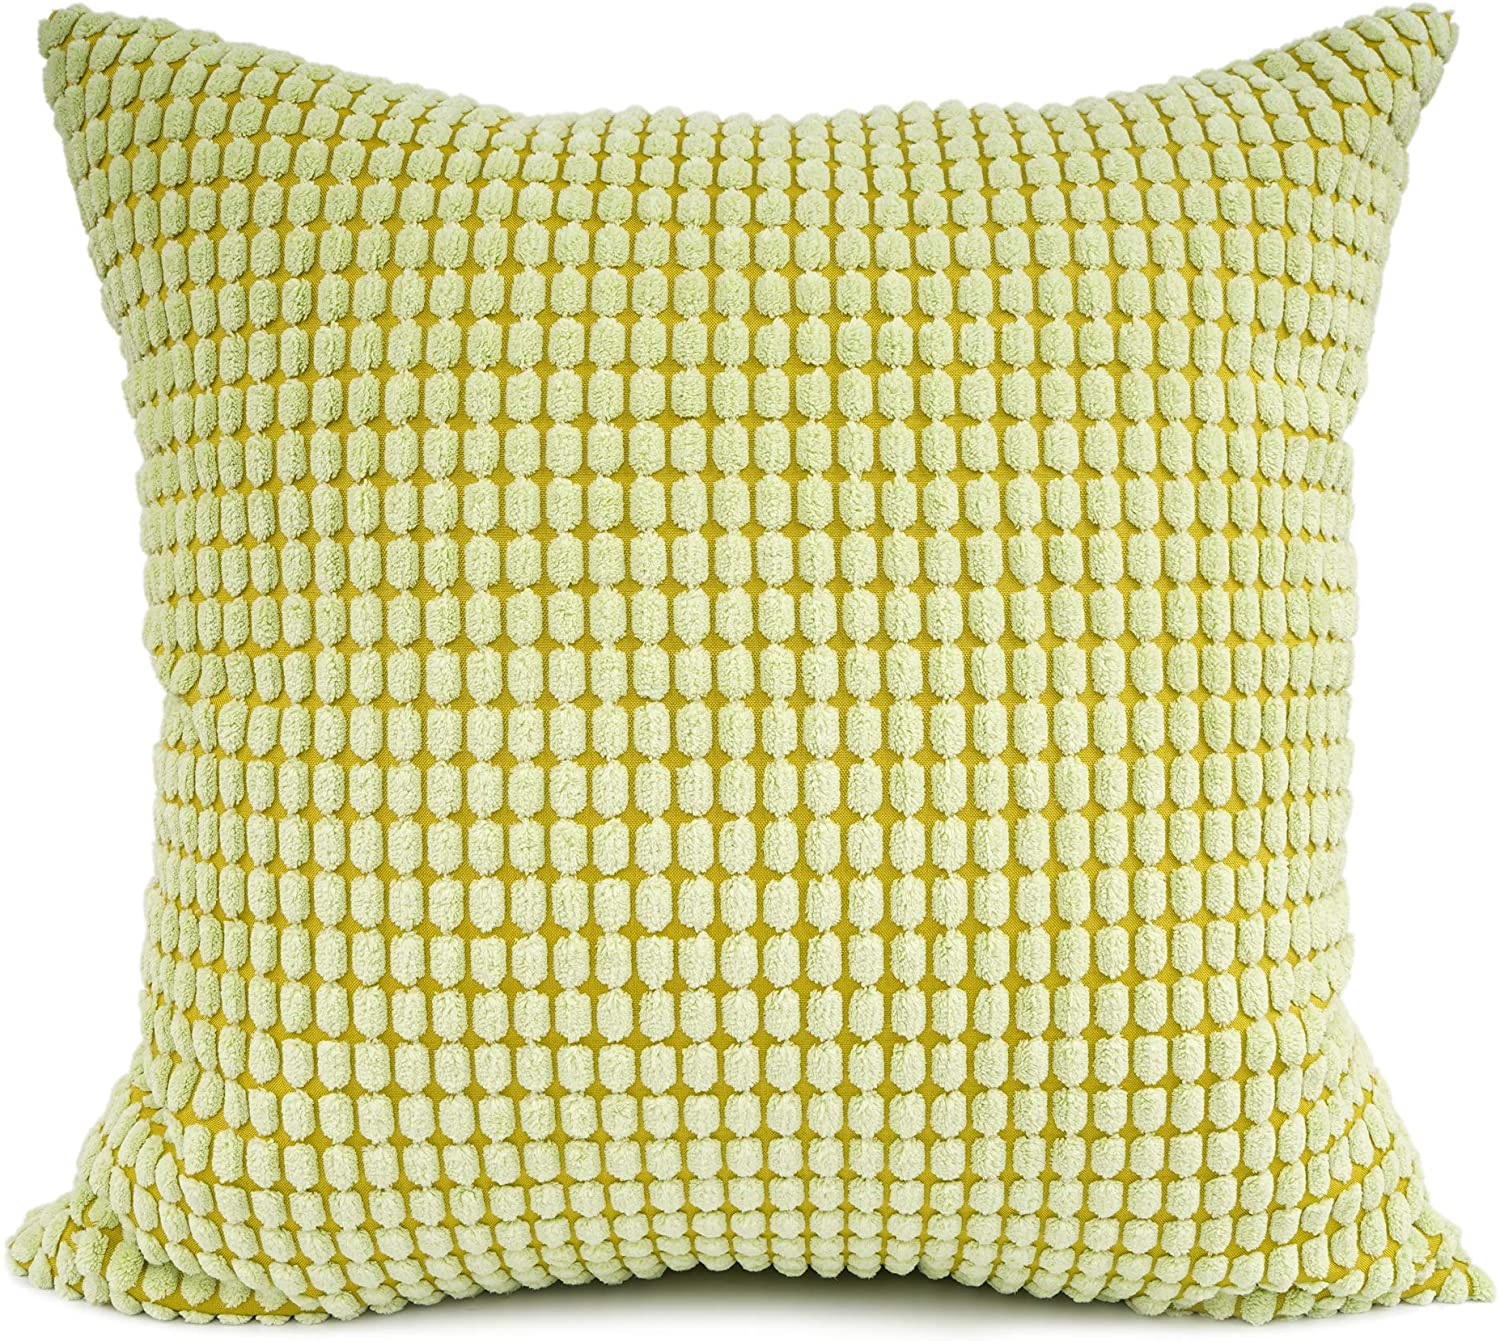 YOUR SMILE Cozy Bolster Pillow Cover Case for Couch Sofa Bed Comfortable Supersoft Corduroy Corn Striped Both Sides 22 X 22 Inches,Green